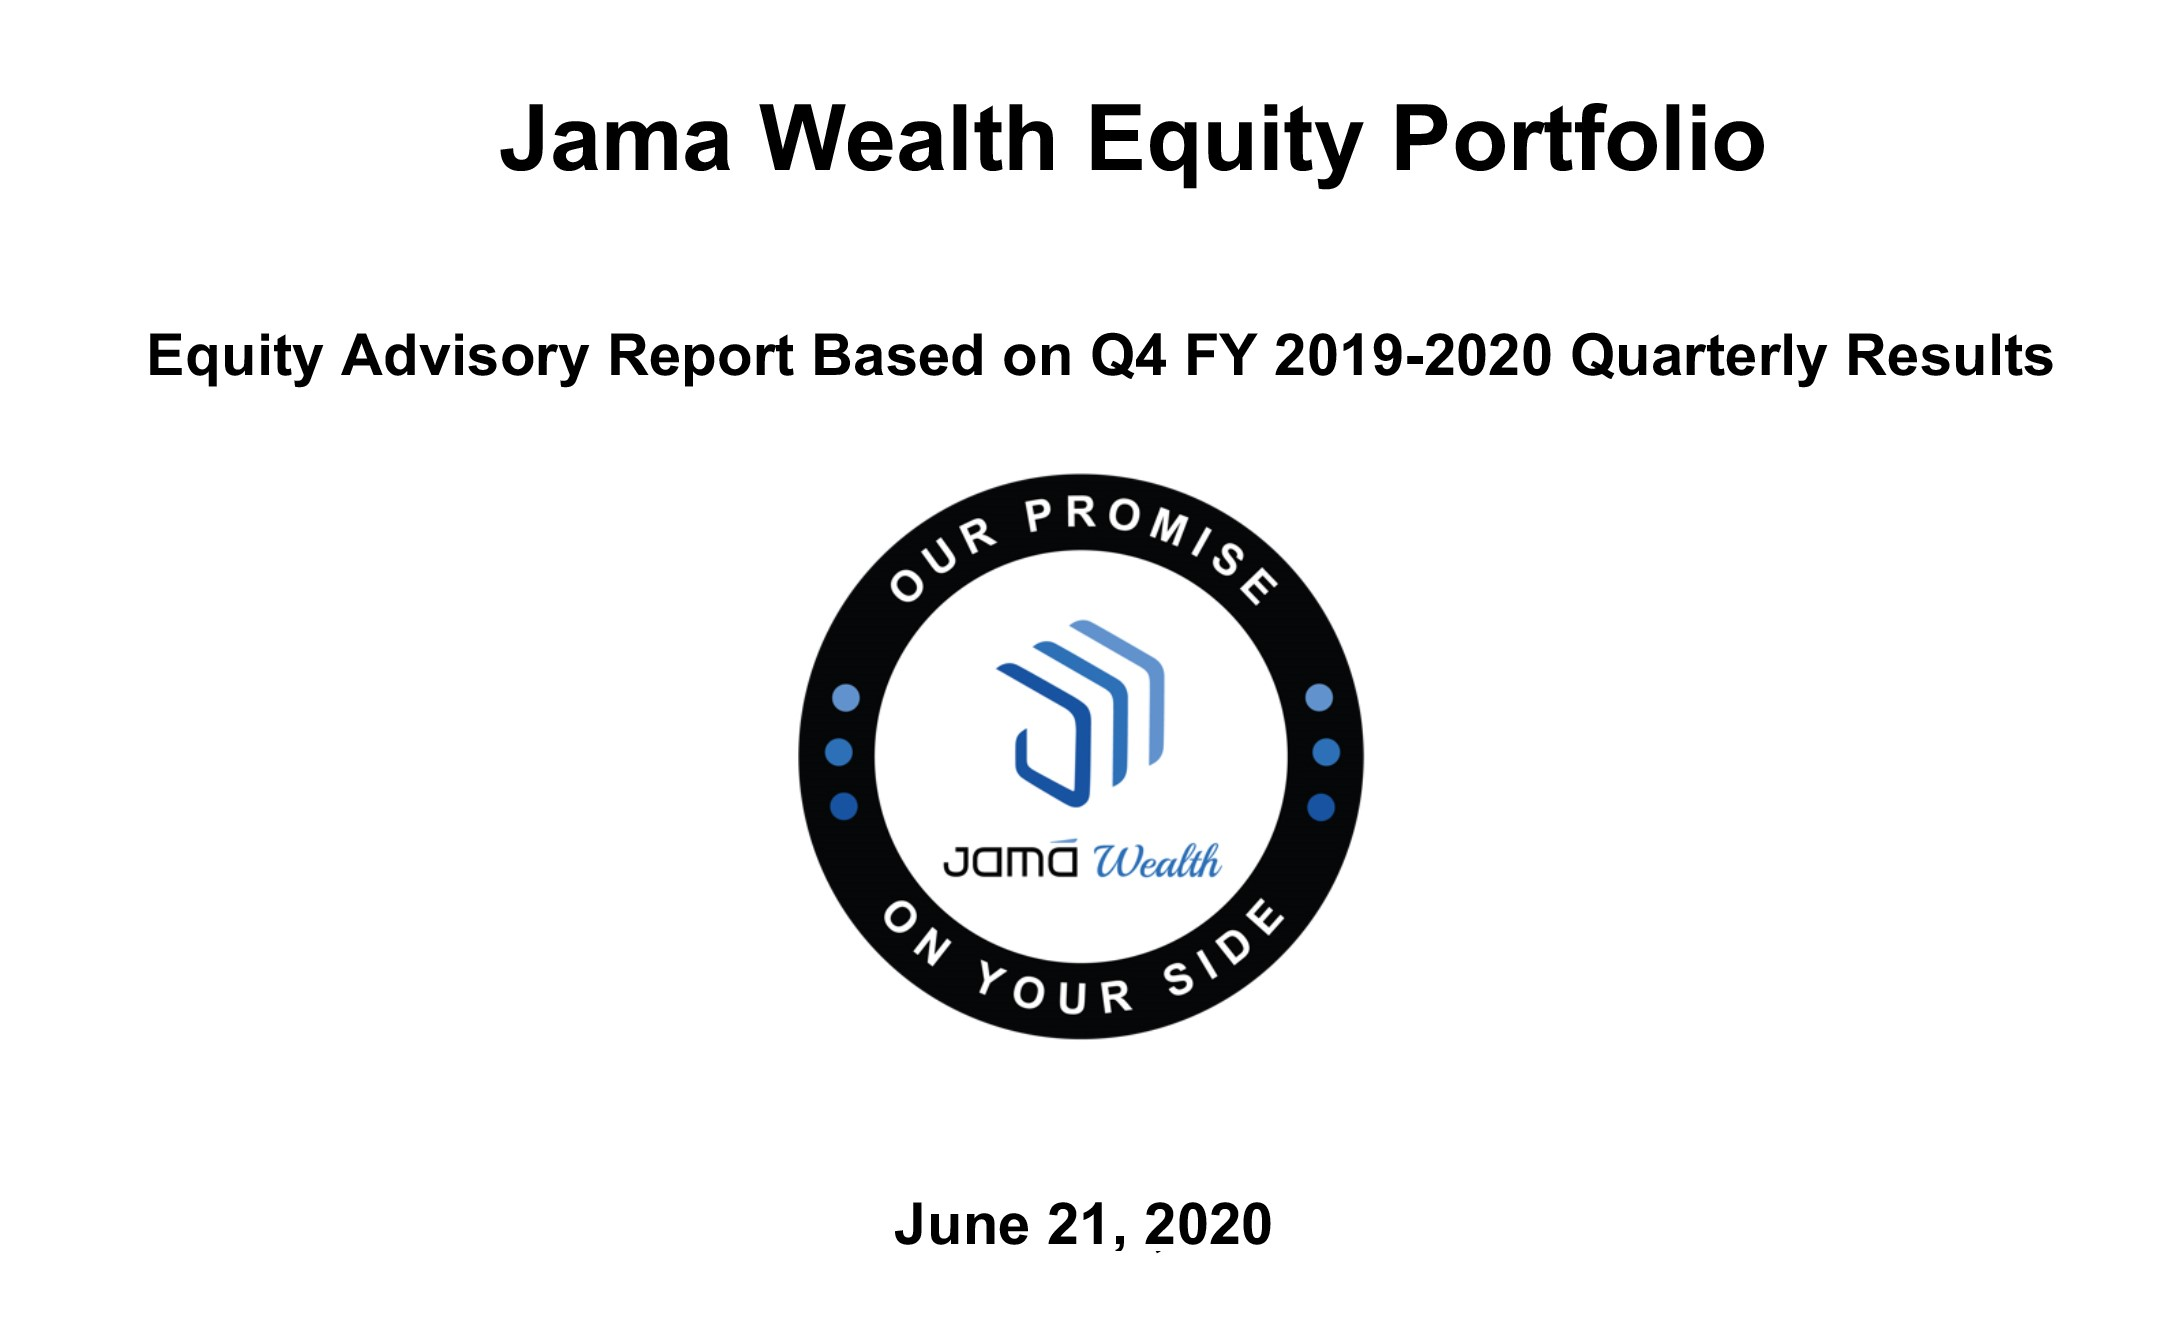 Jama Wealth Equity Advisory Report  Q4 FY 2019-2020 Quarterly Results